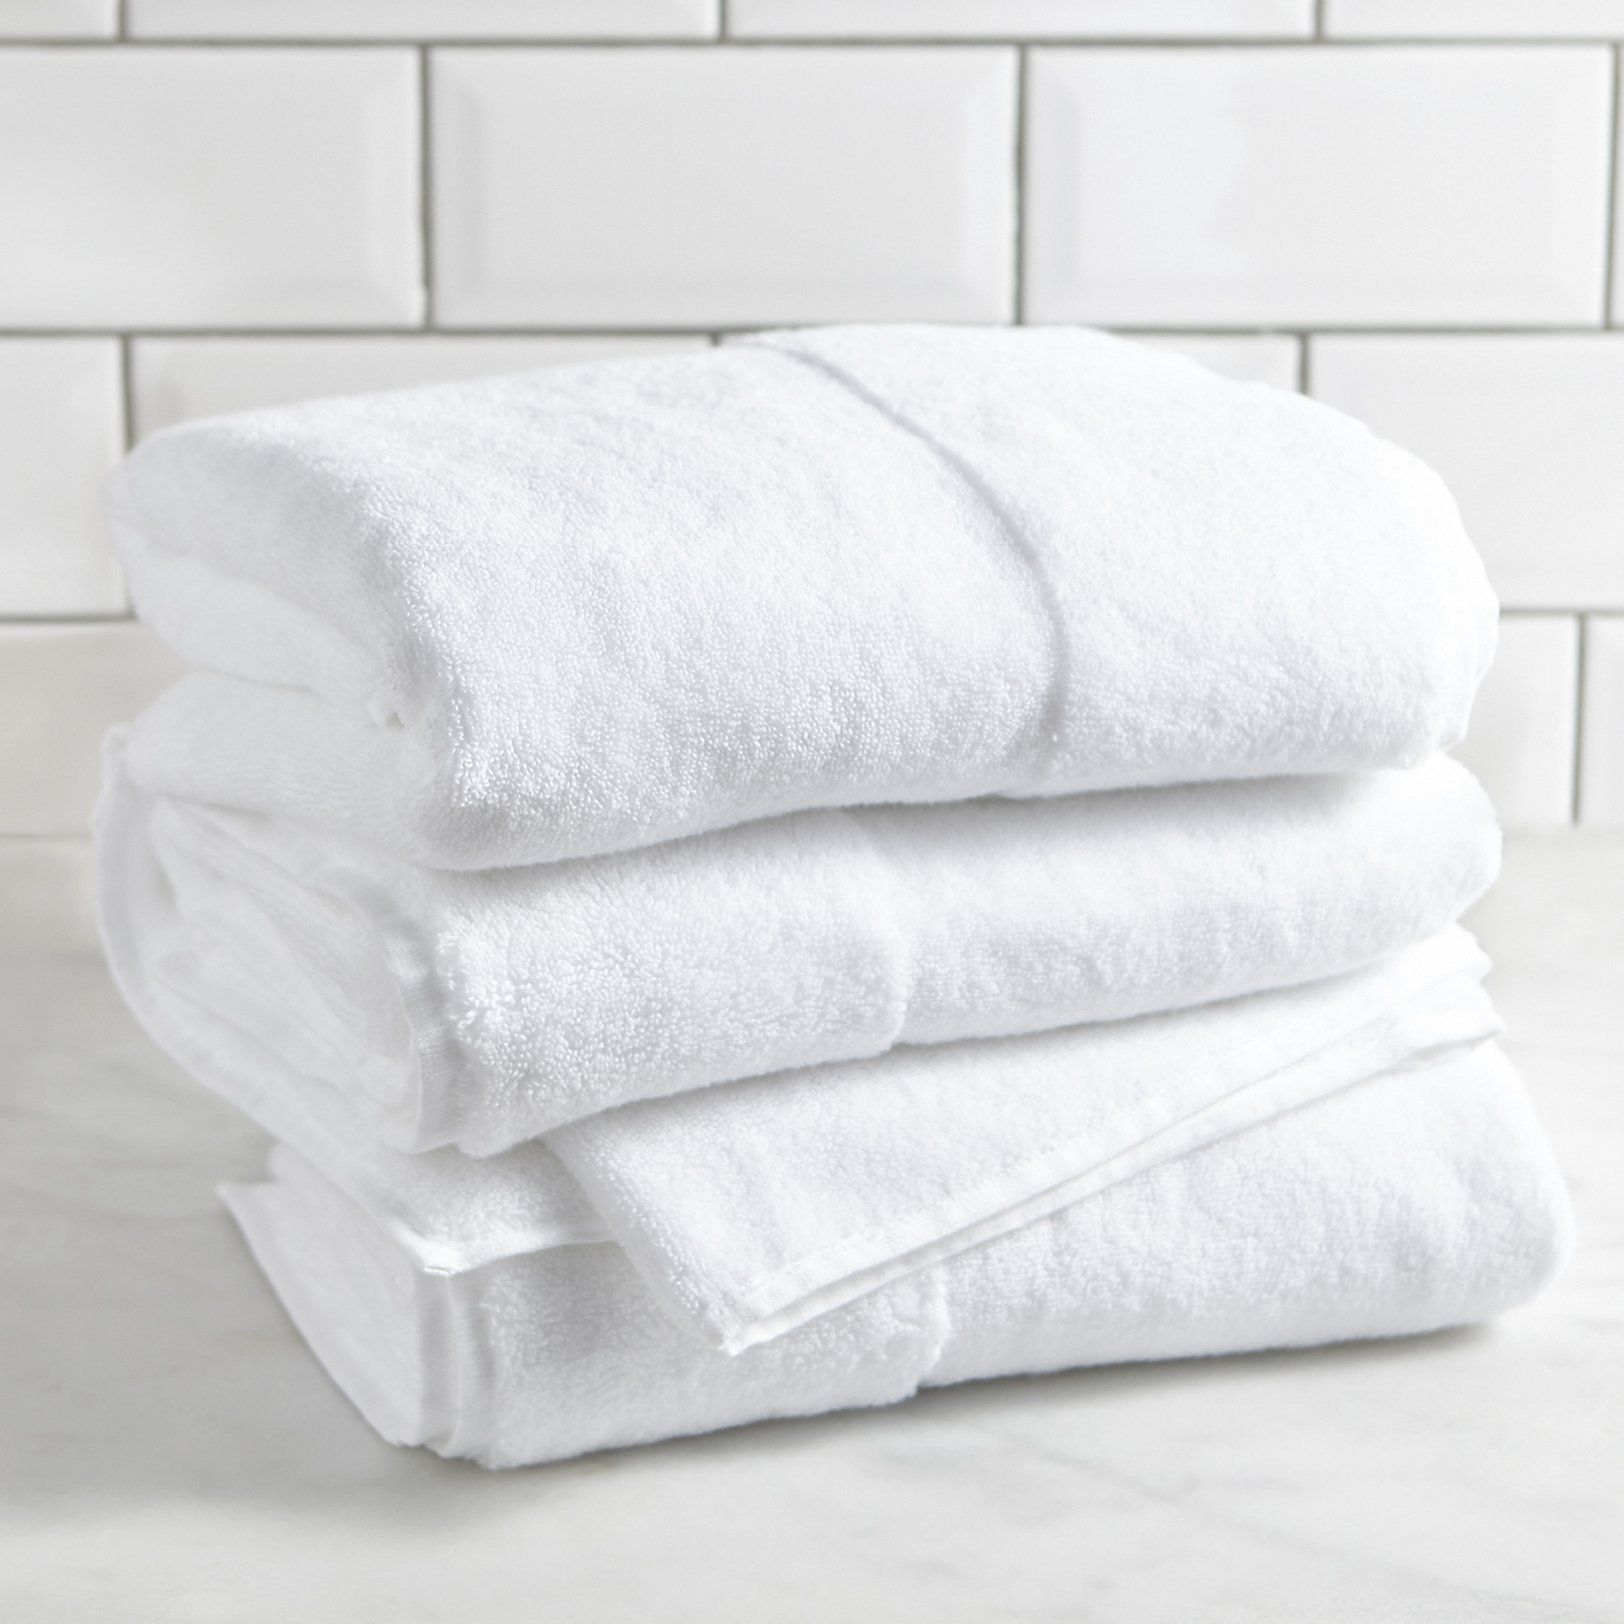 Classic Hydrocotton Towel Towels Bathroom Home The White